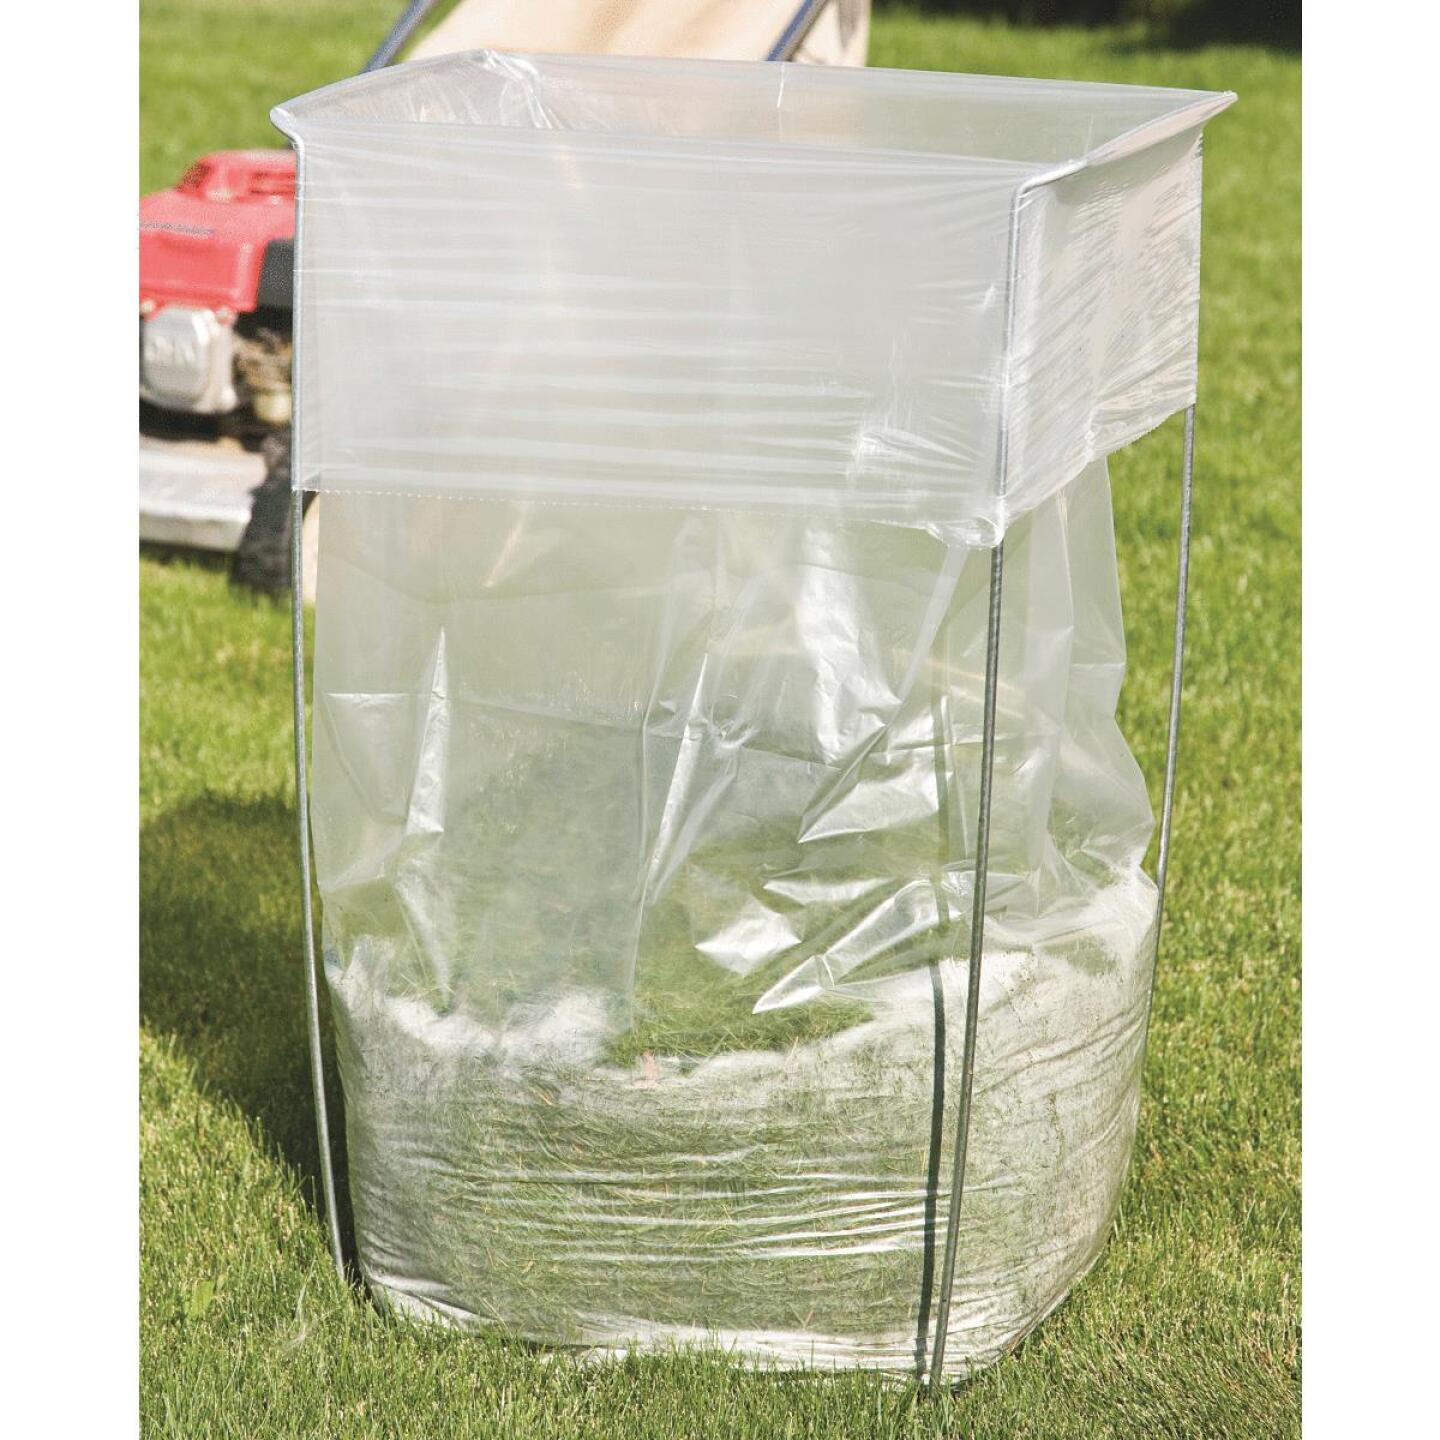 Bag Buddy 39 to 45 Gal. Capacity Wire Frame Lawn & Yard Bag Holder Image 1